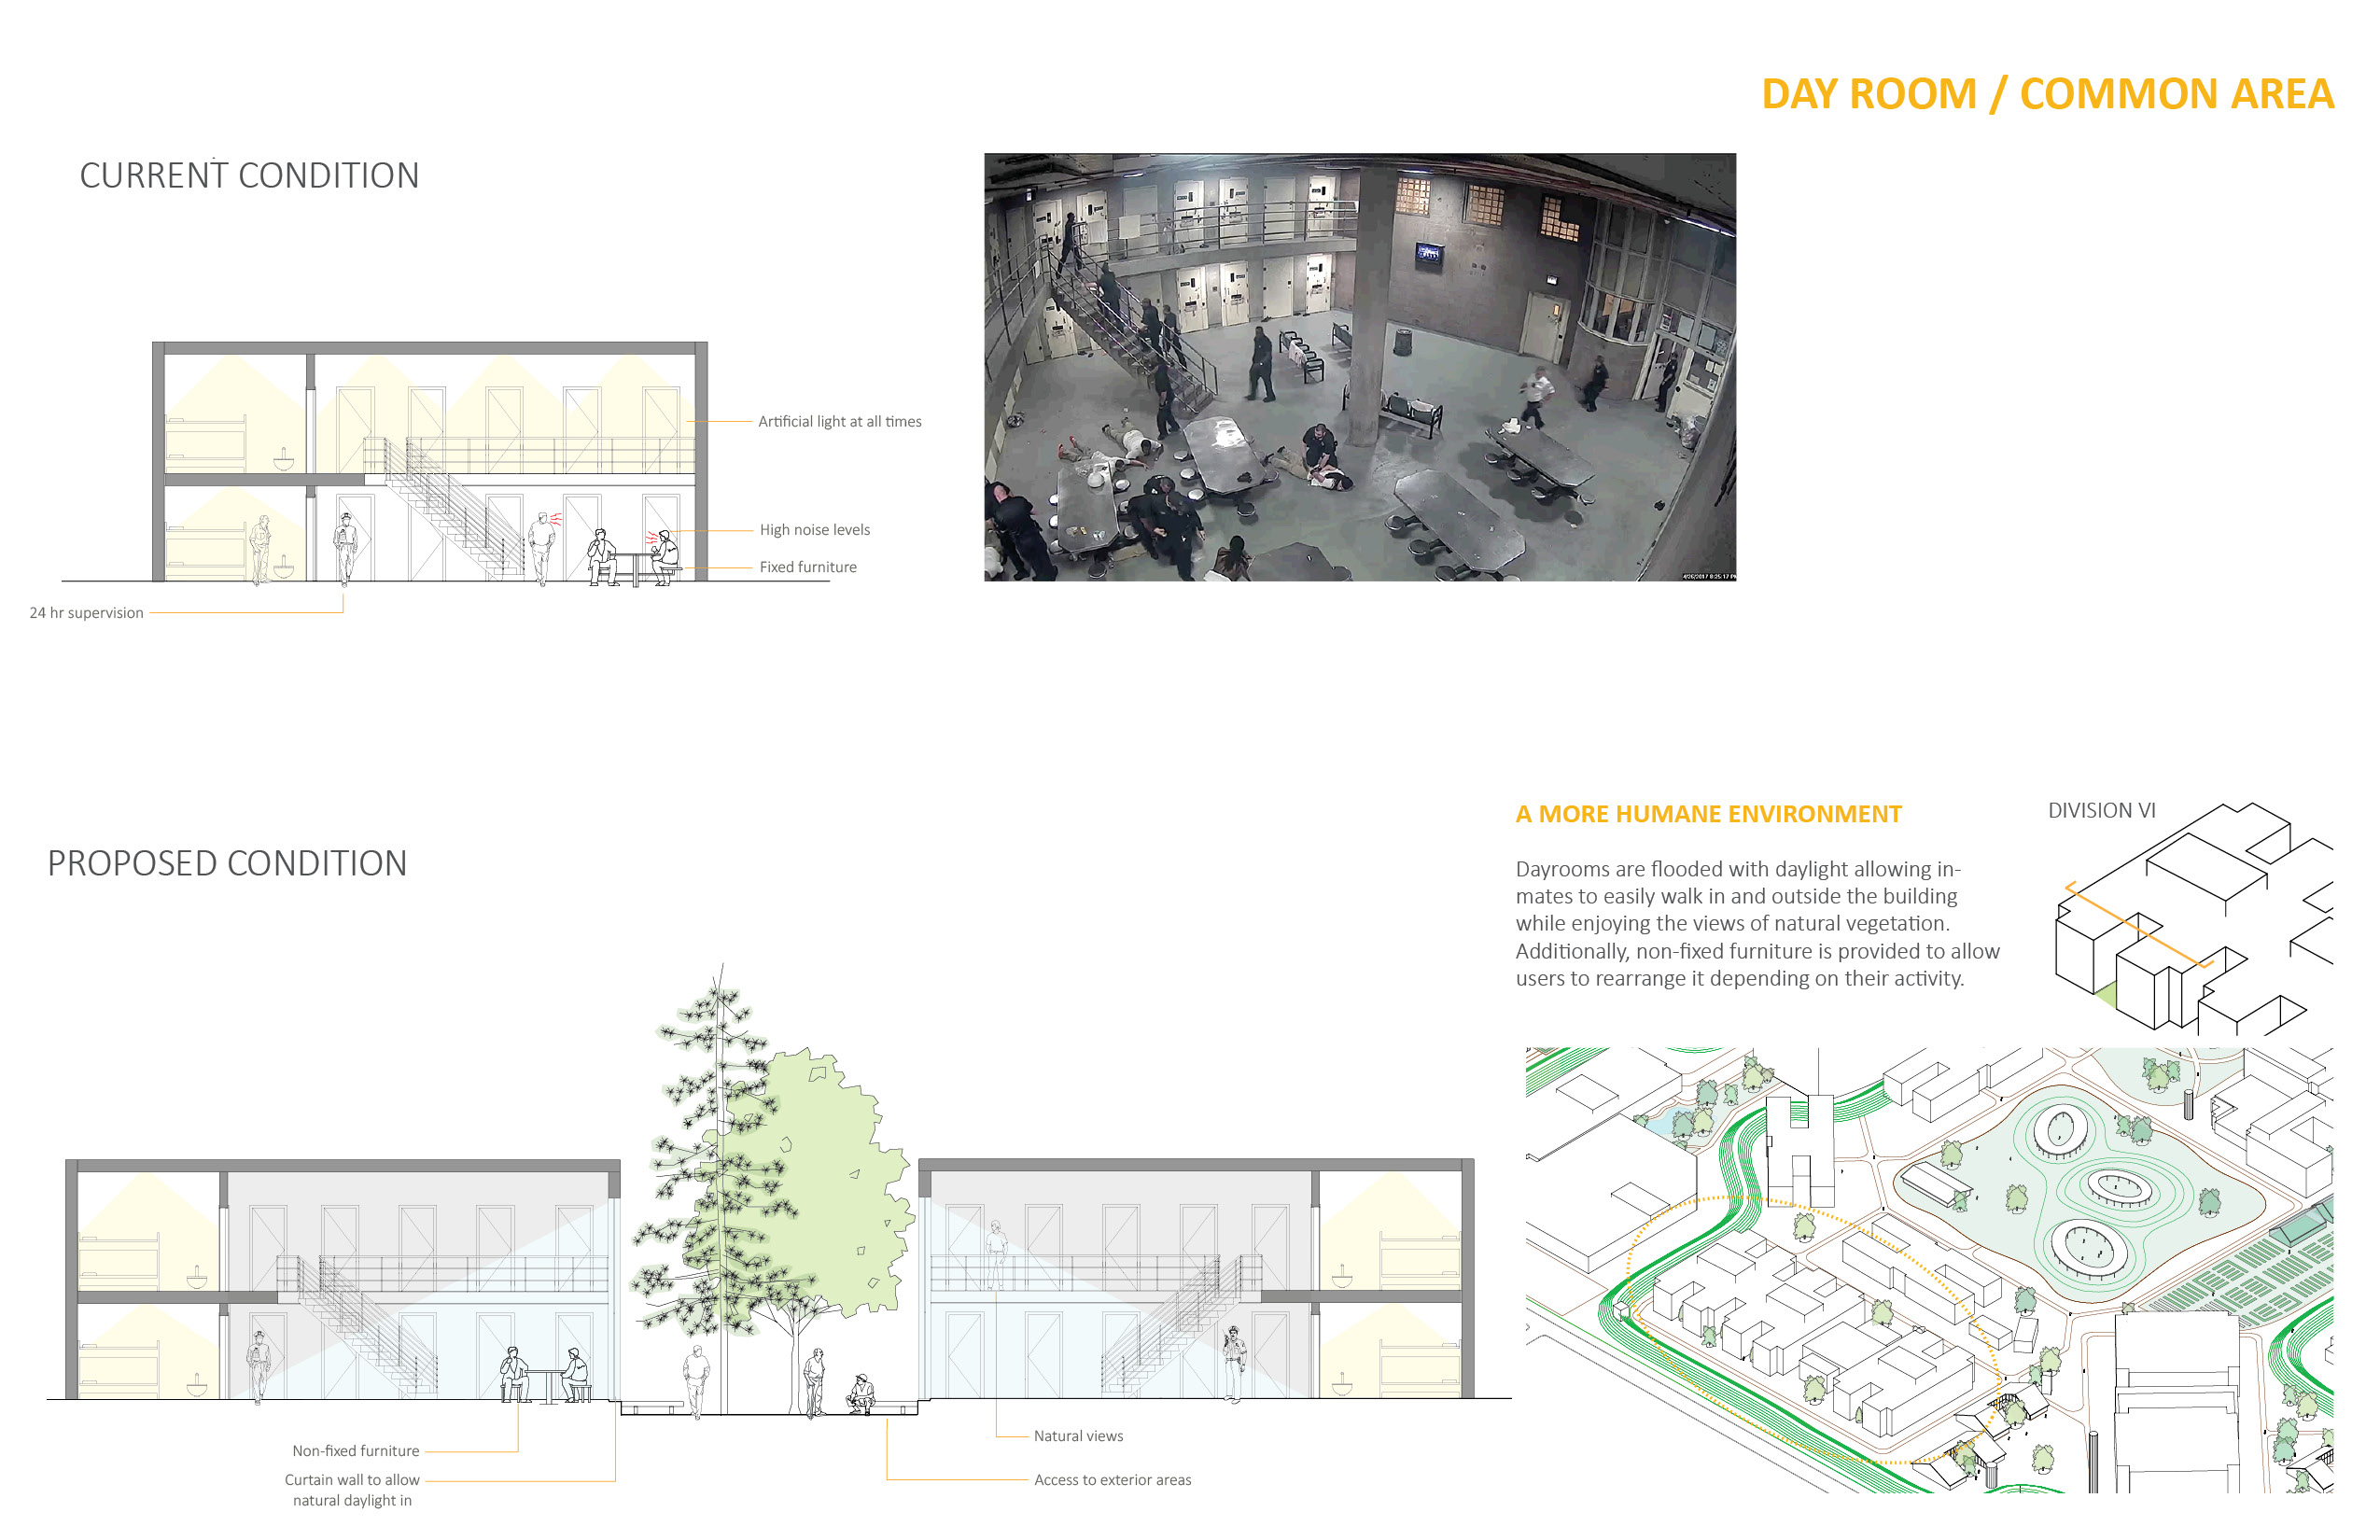 Alba Quezada - Campus Proposal - Common Room